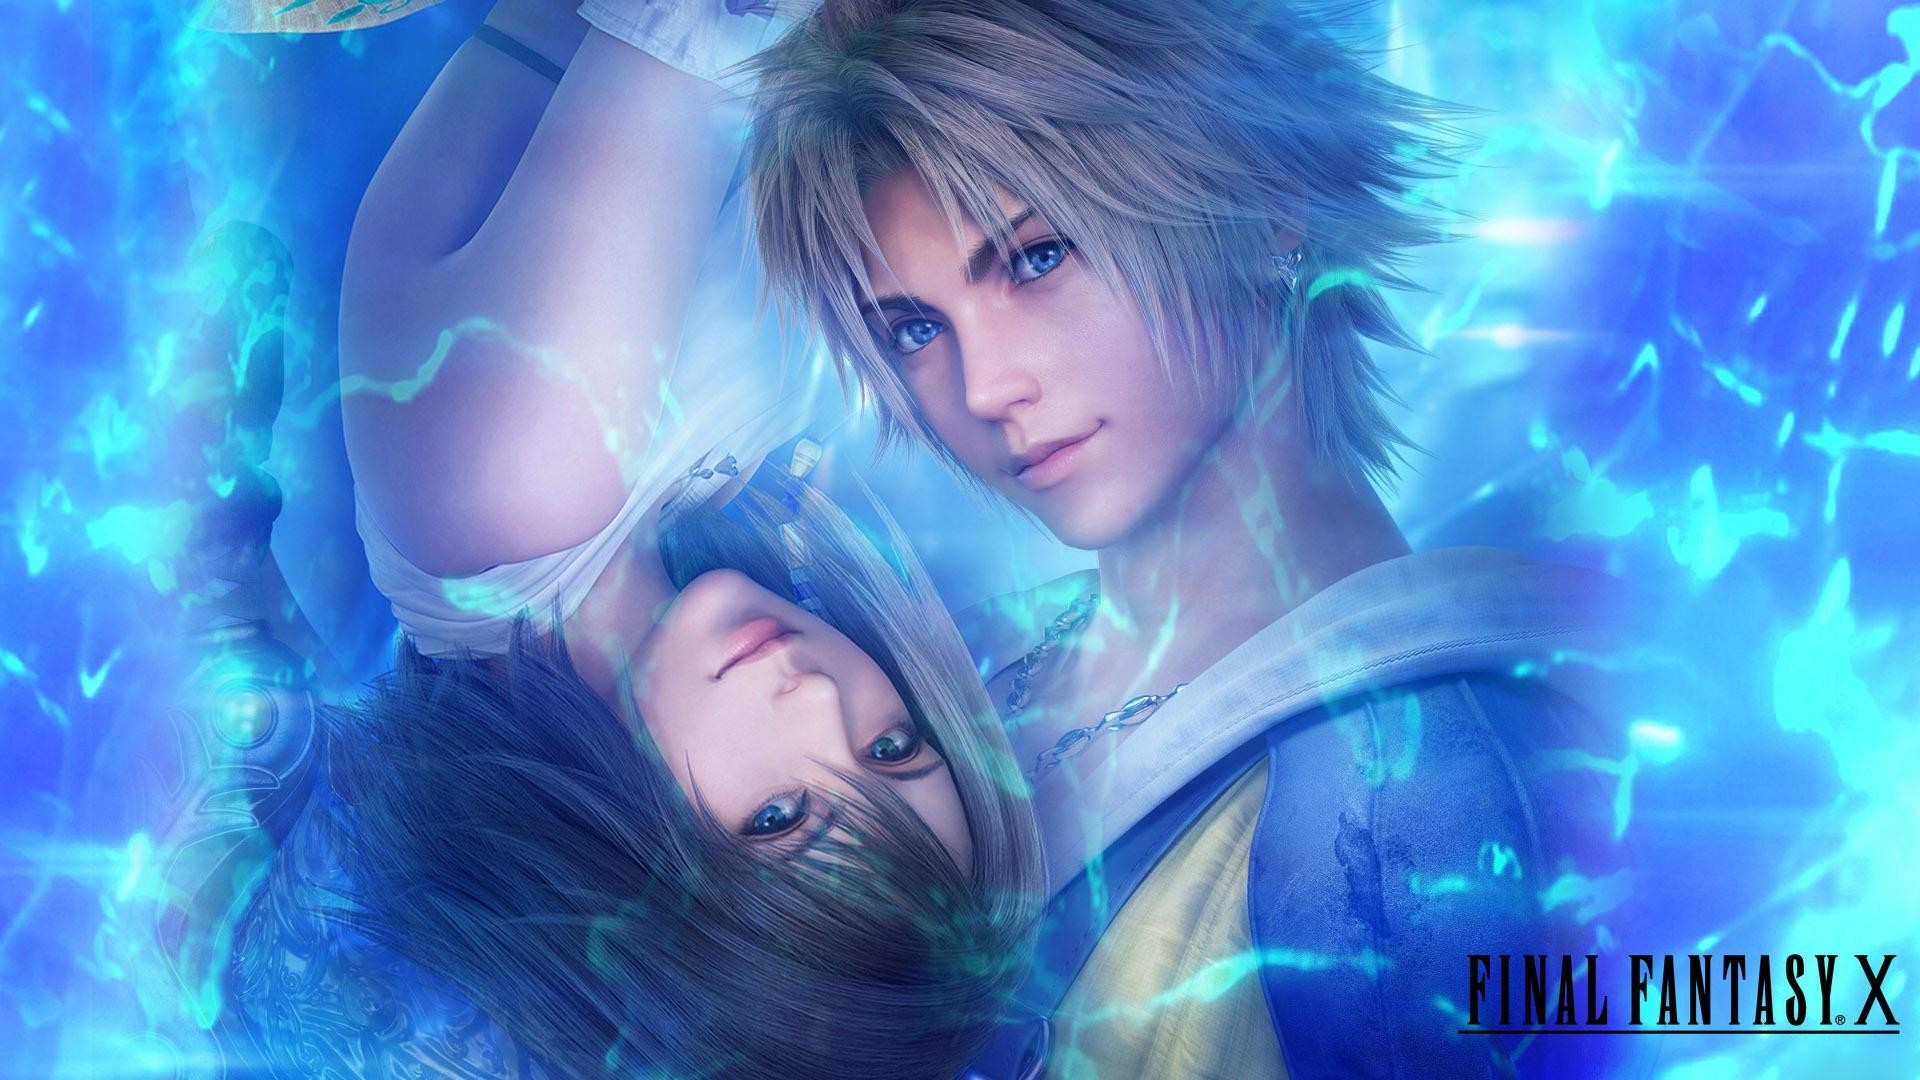 Final Fantasy X Wallpapers Hd 77 Images: Final Fantasy X Wallpaper (71+ Images